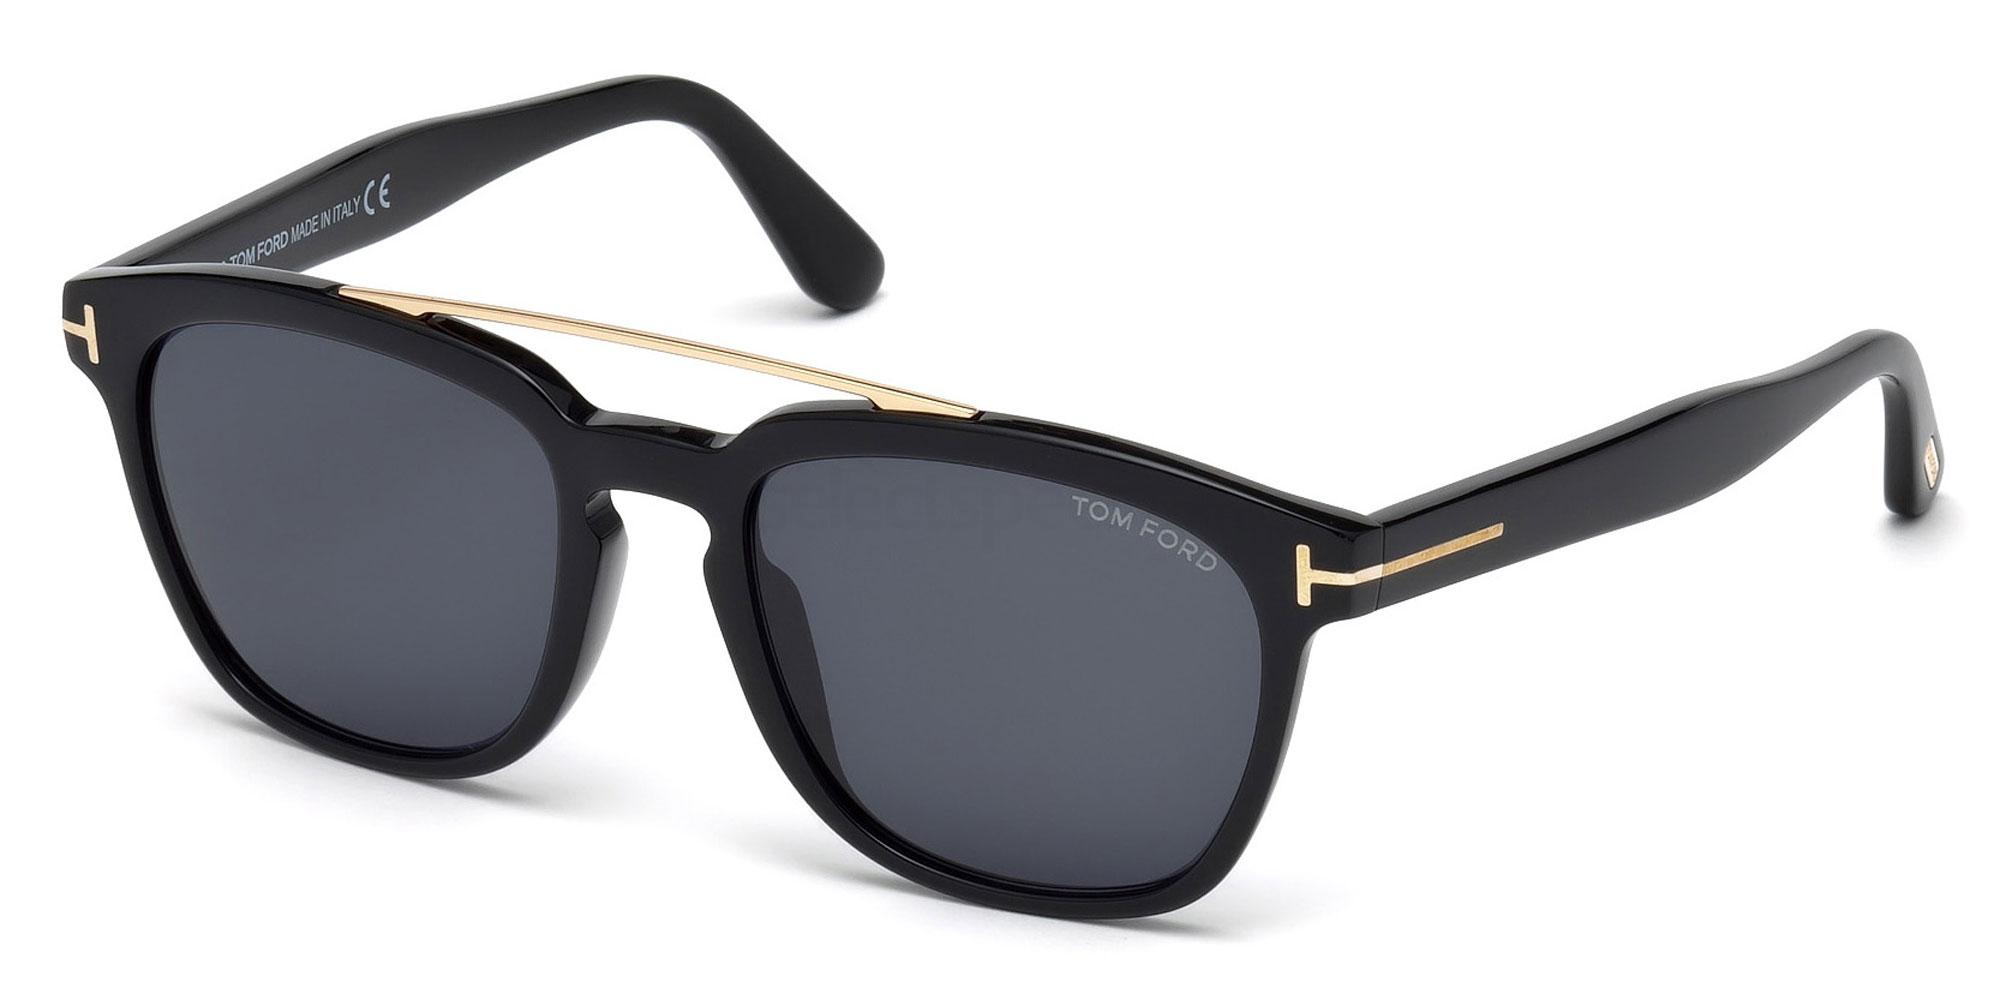 01A FT0516 , Tom Ford